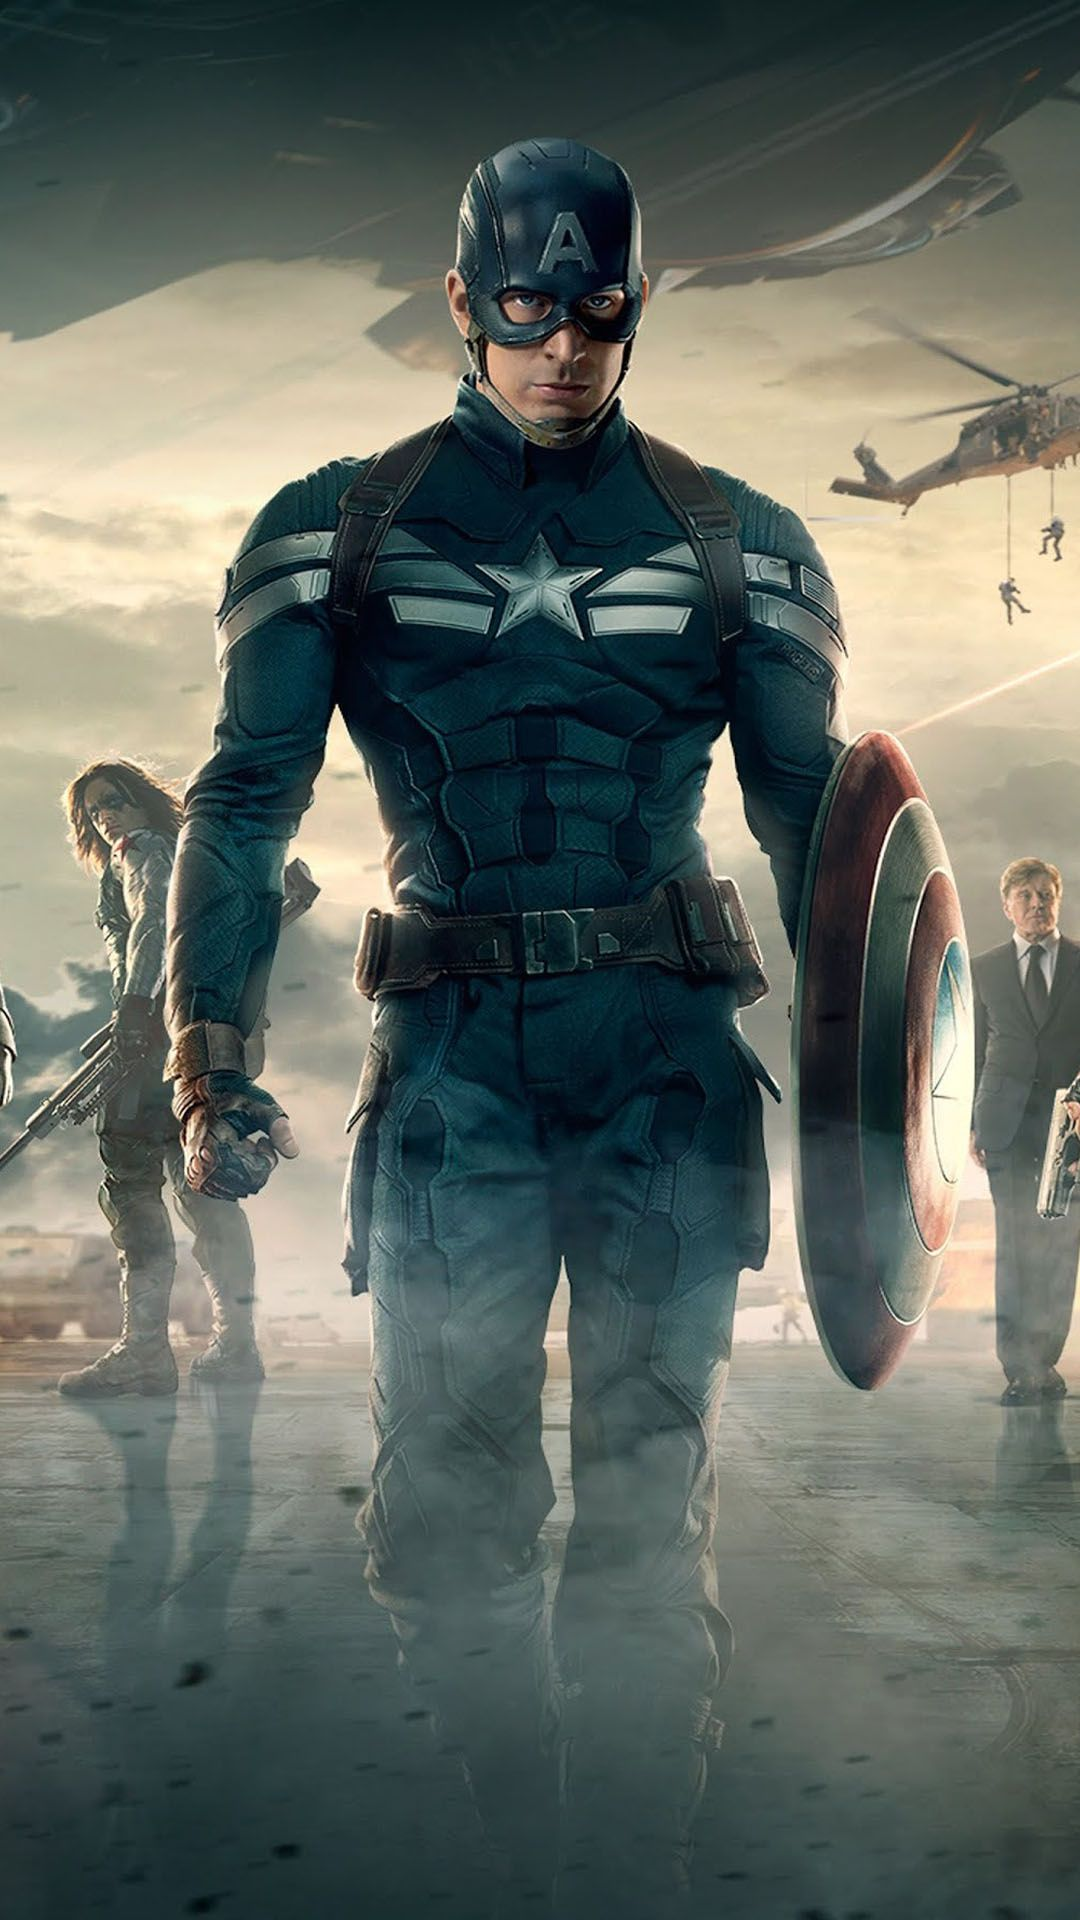 Captain America 2 The Winter Soldier HTC One wallpaper